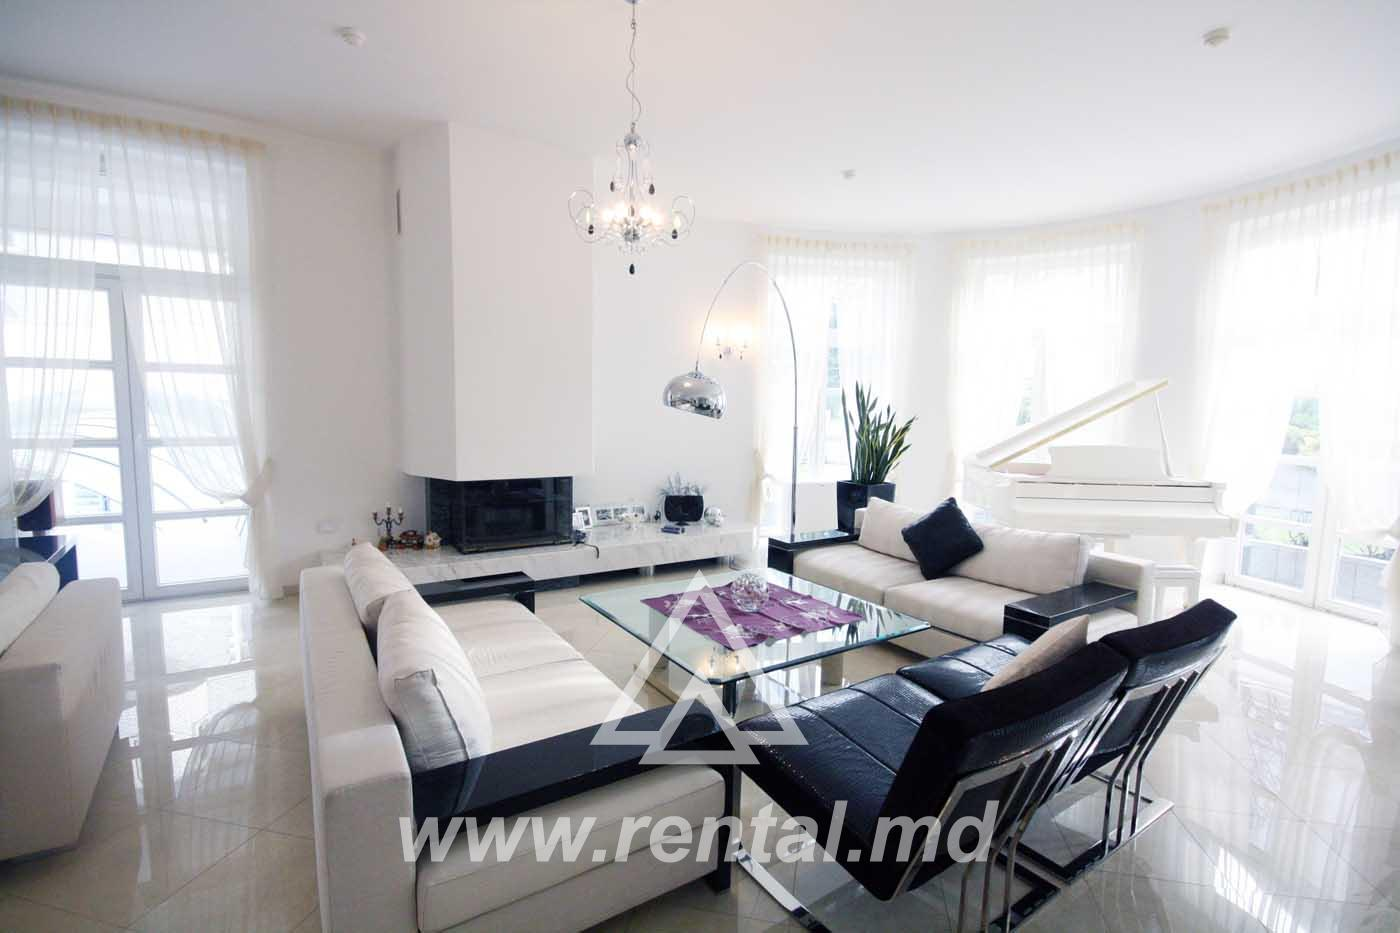 VIP house for rent or sale in Chisinau